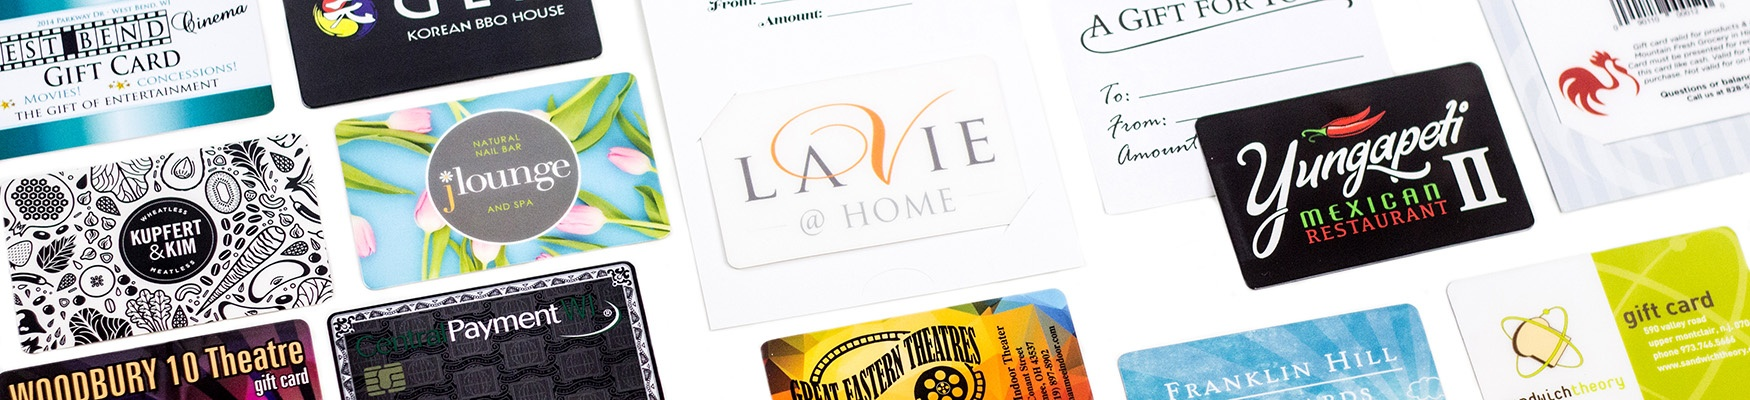 Gift-Card-Banner-Sample-6-1750x400.jpg